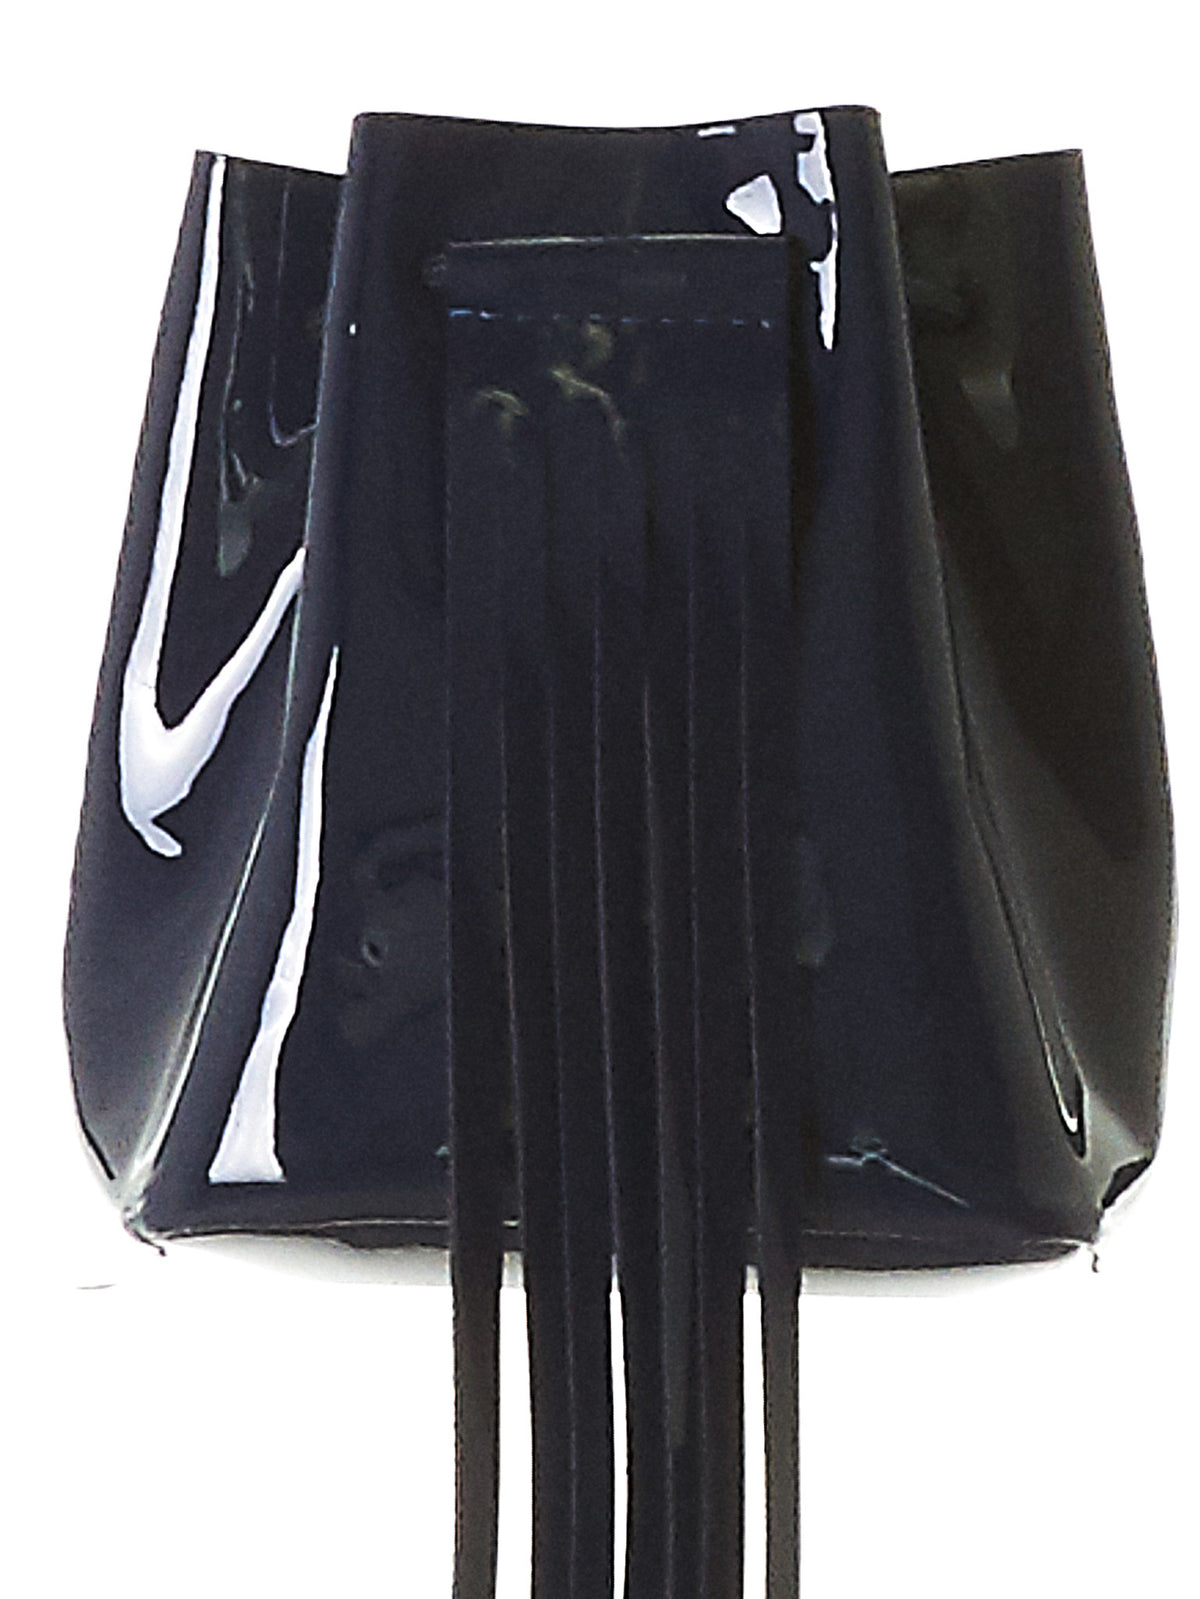 Polished Fringe Bag (3.17 MINI BUCKET NAVY-GLOSSY) - H. Lorenzo